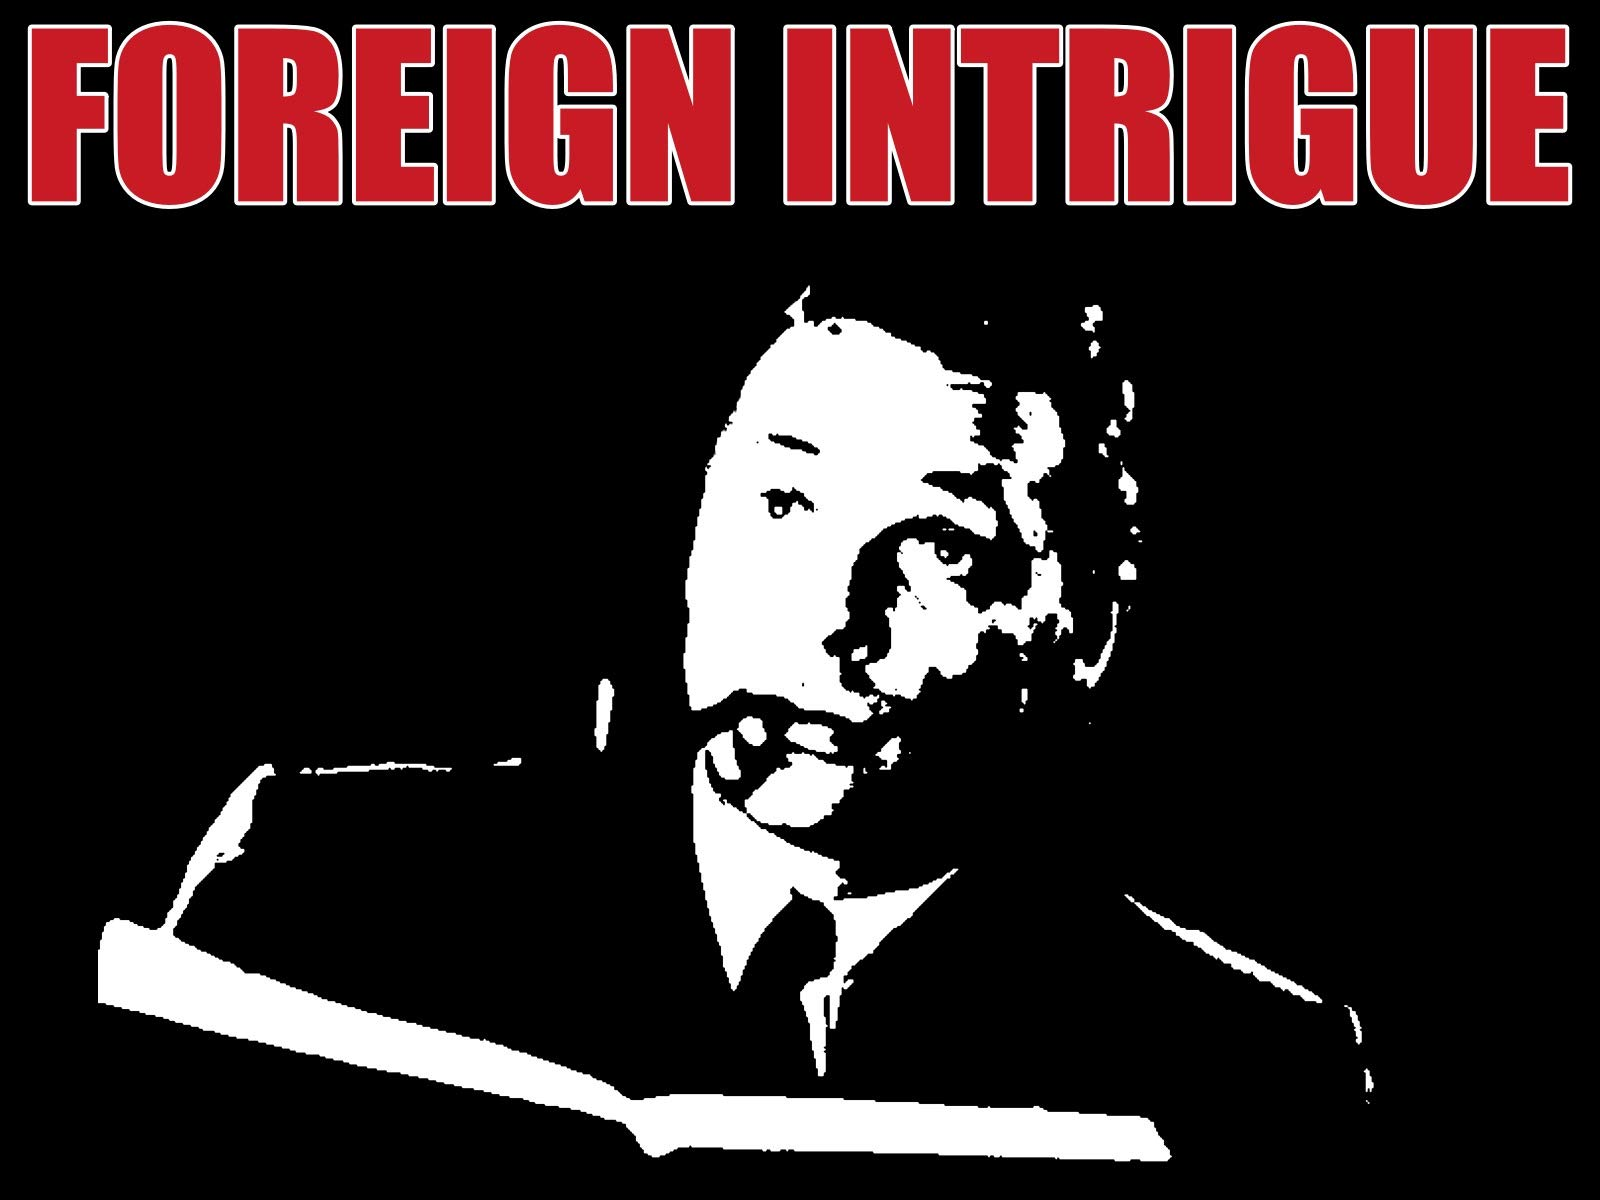 Foreign Intrigue - Season 1